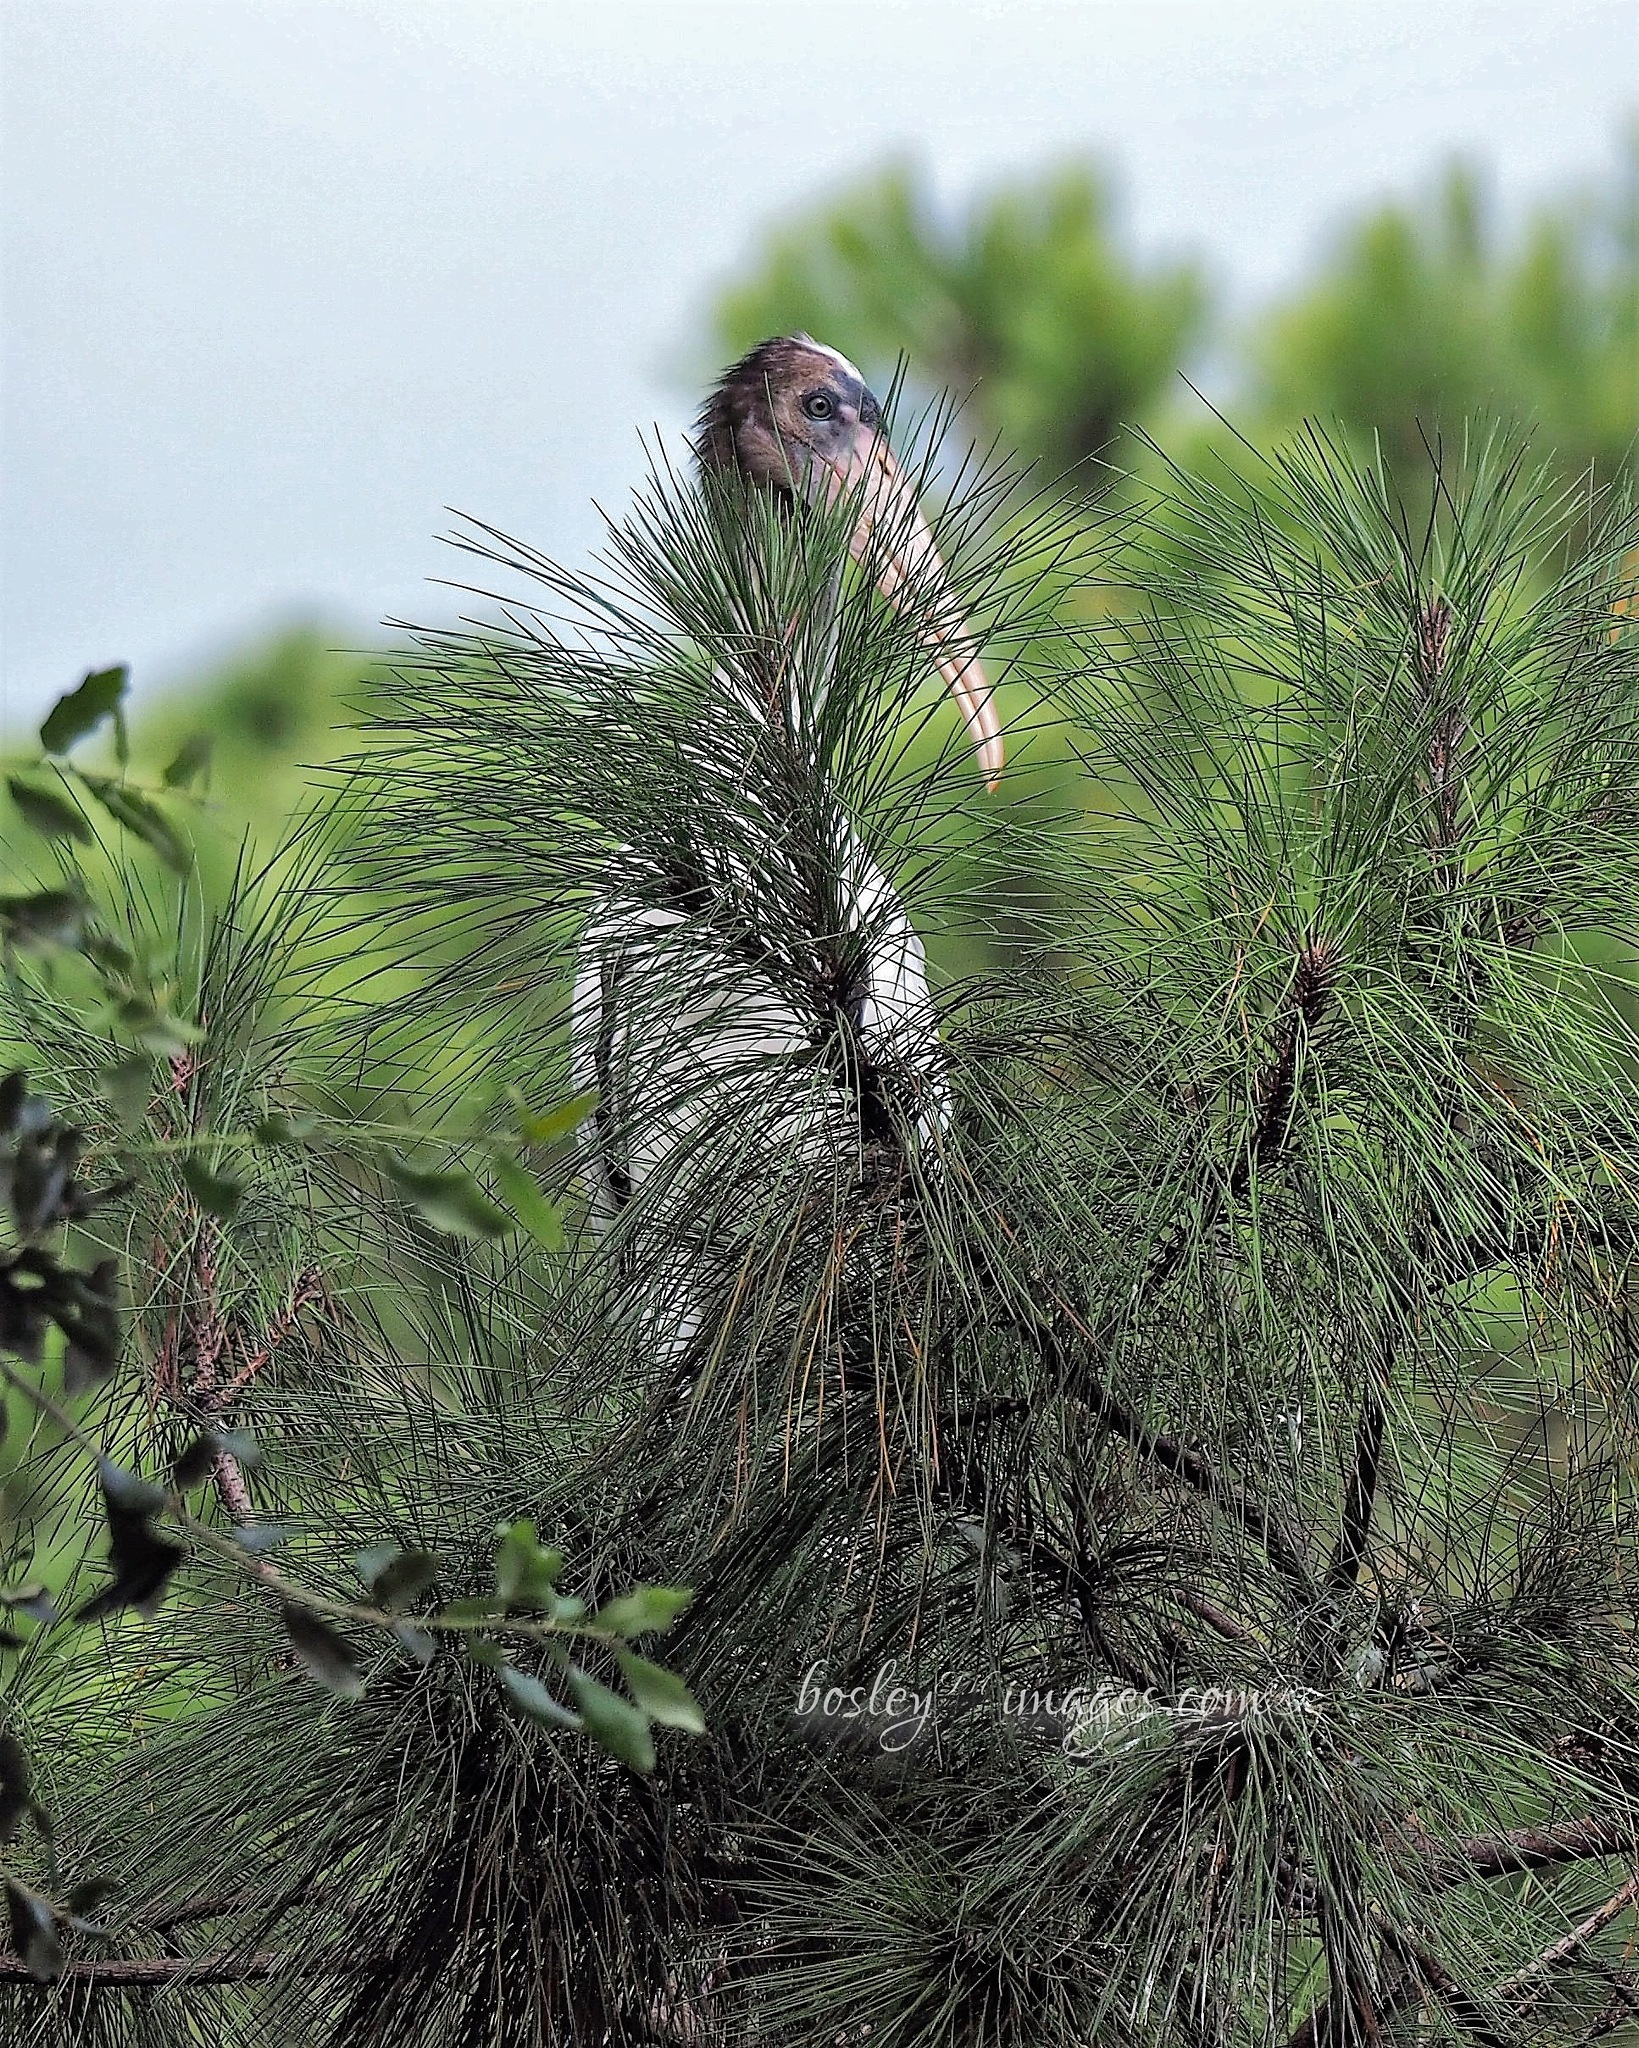 Wood Stork in the pine needles by william.l.bosley